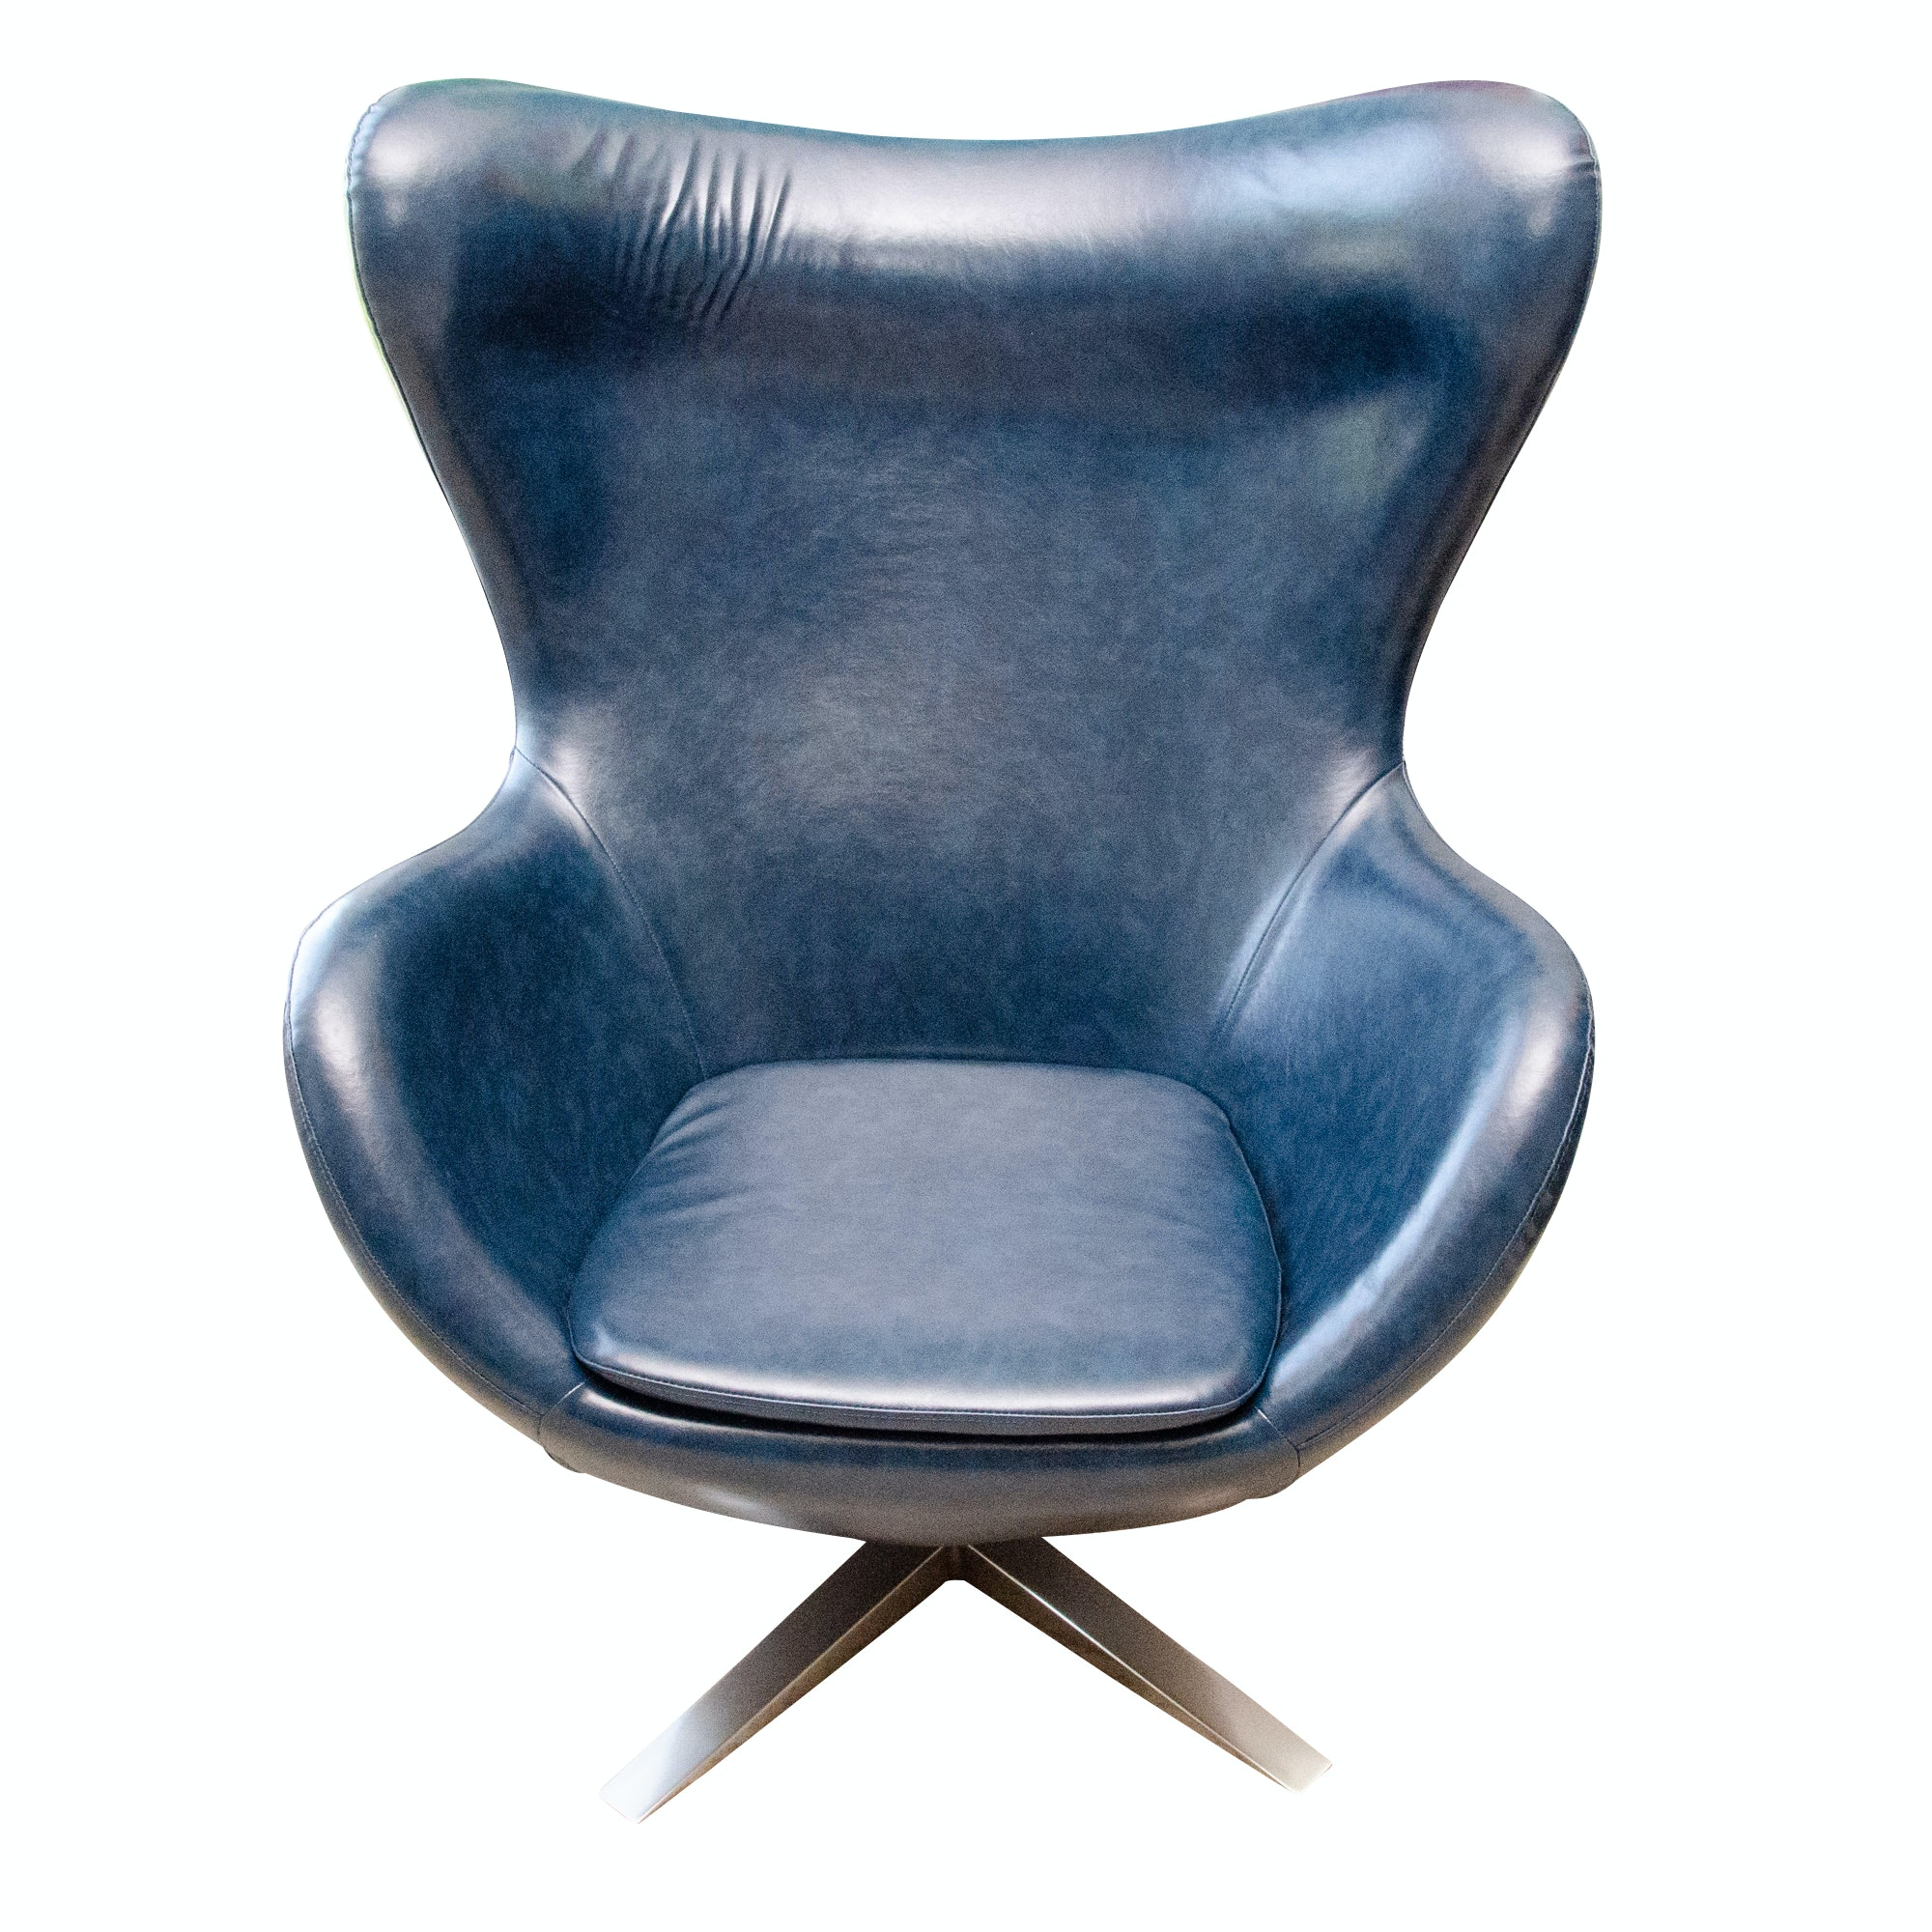 Contemporary Modernist Vinyl Blue Egg Chair, After a Design by George Nelson